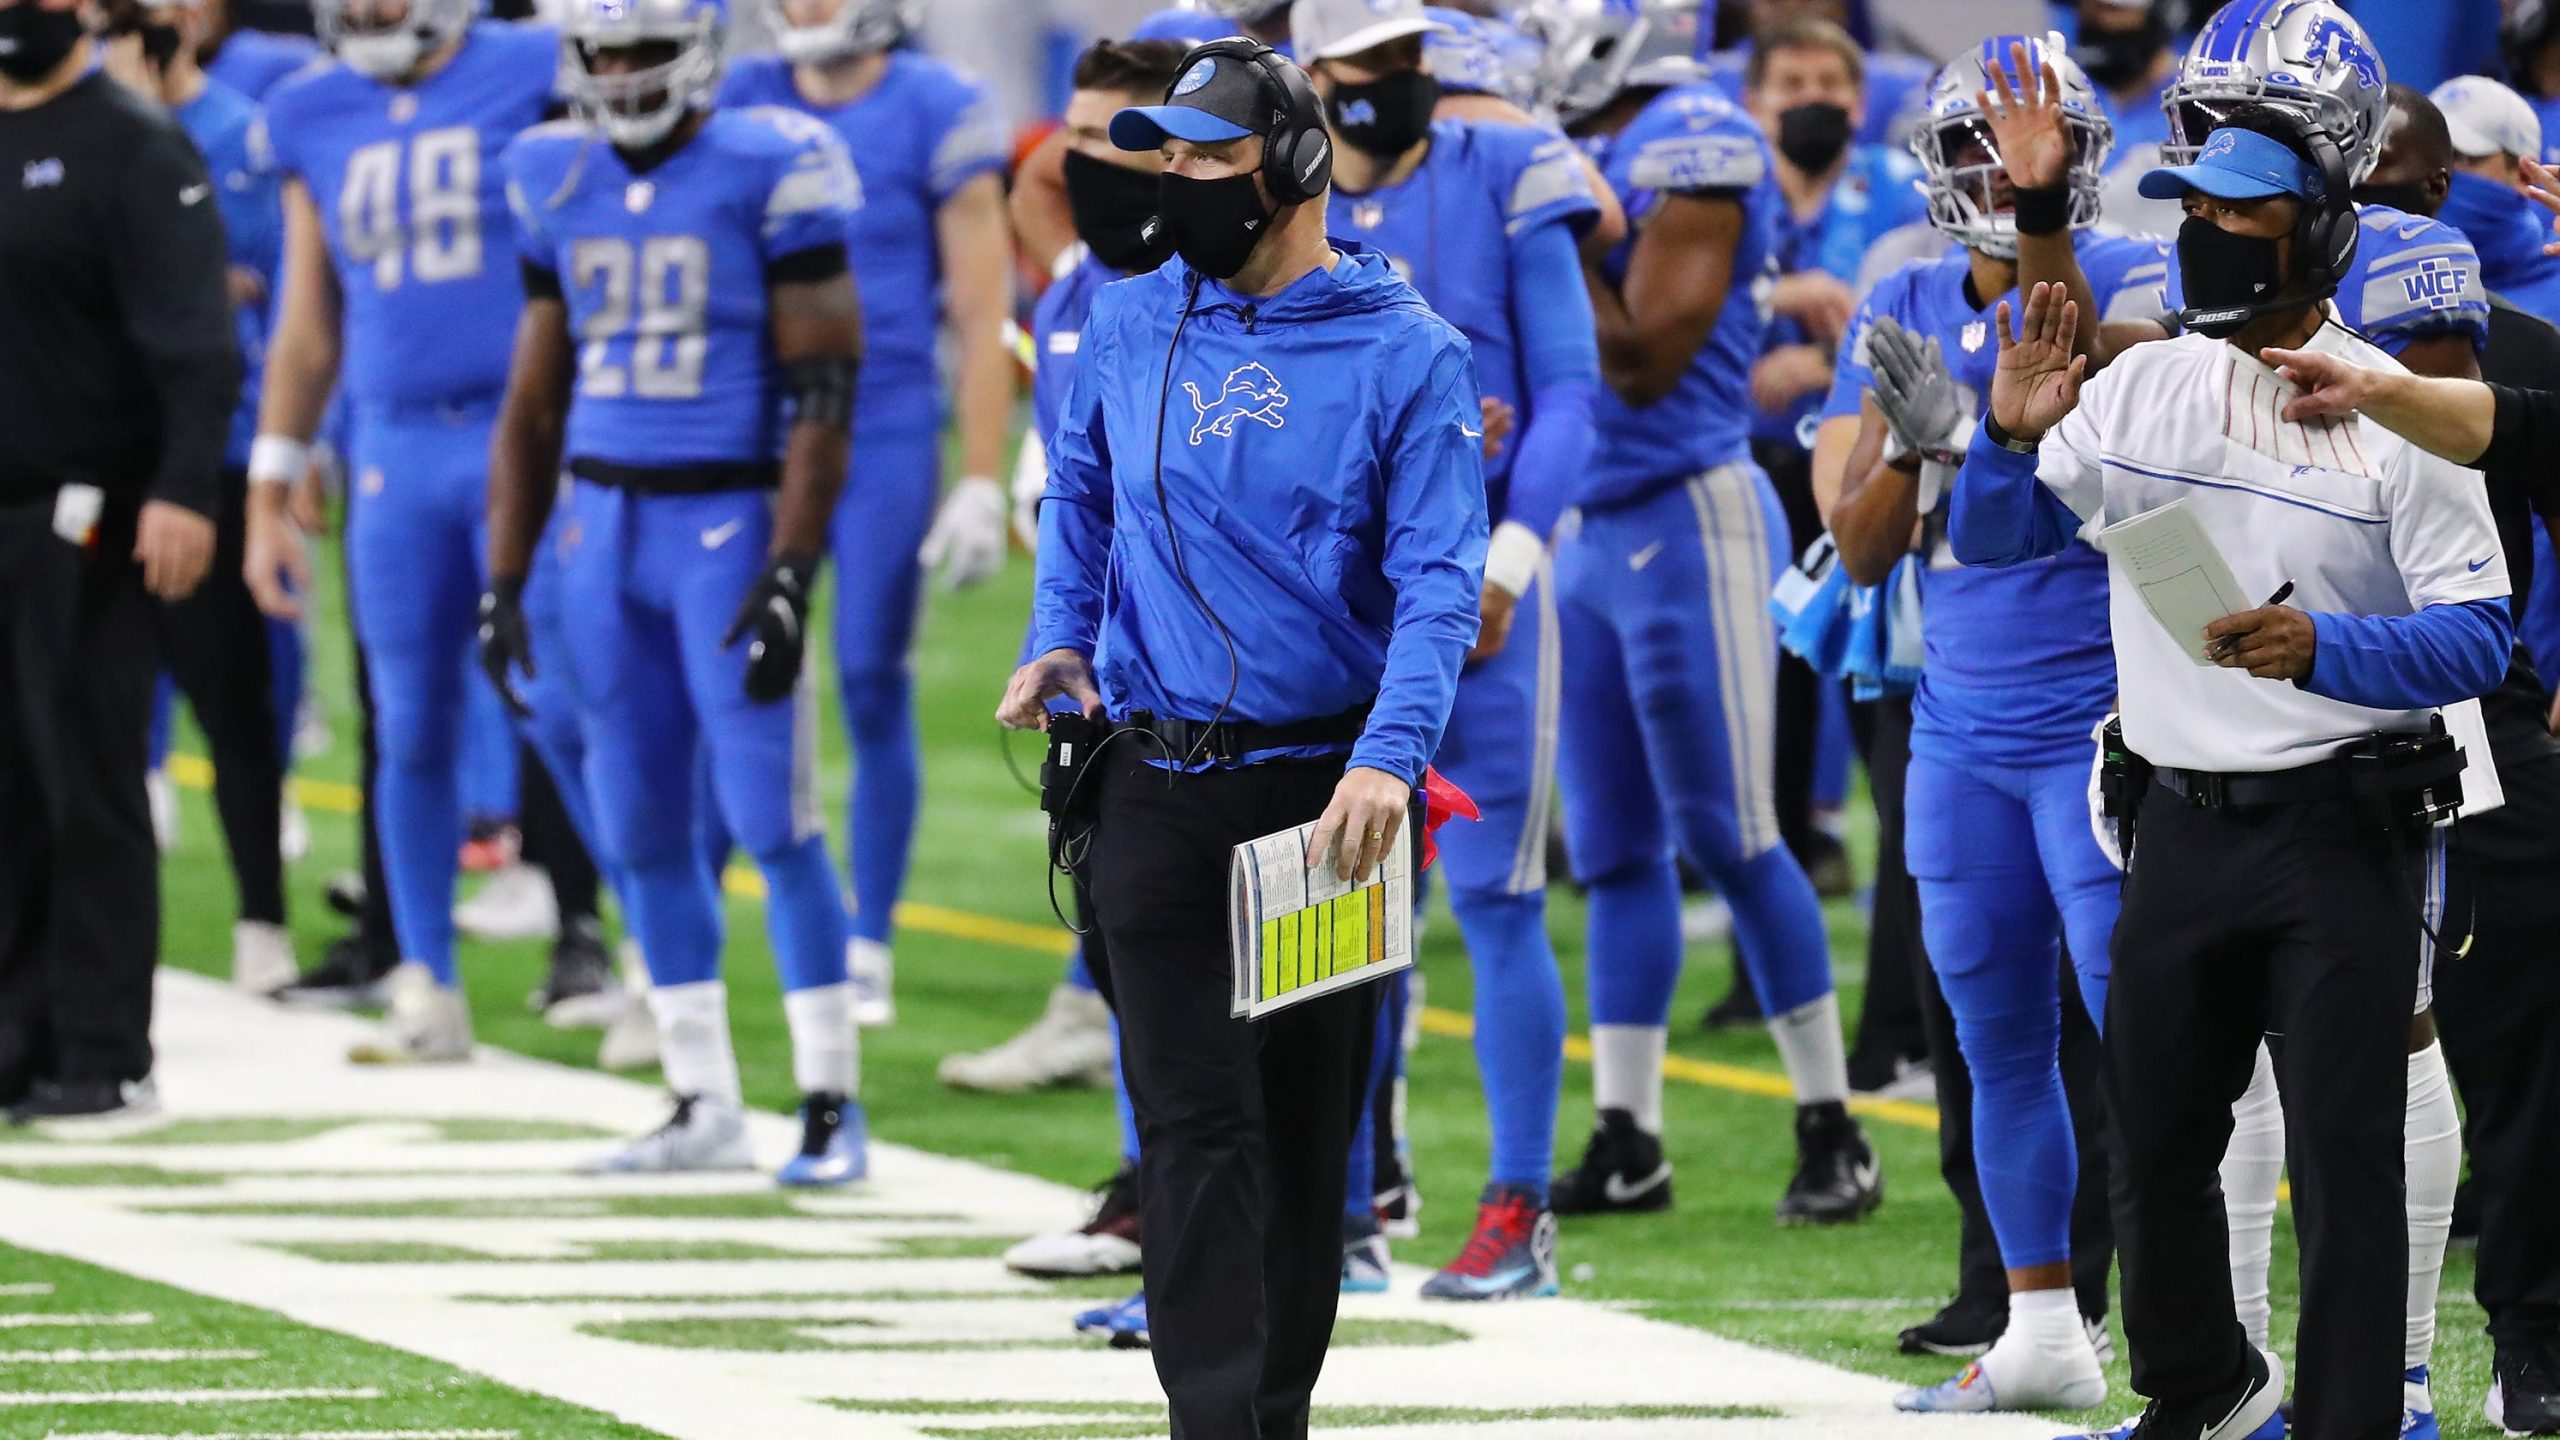 Why NFL refused to push back Saturday's Detroit Lions vs. Tampa Bay Buccaneers game